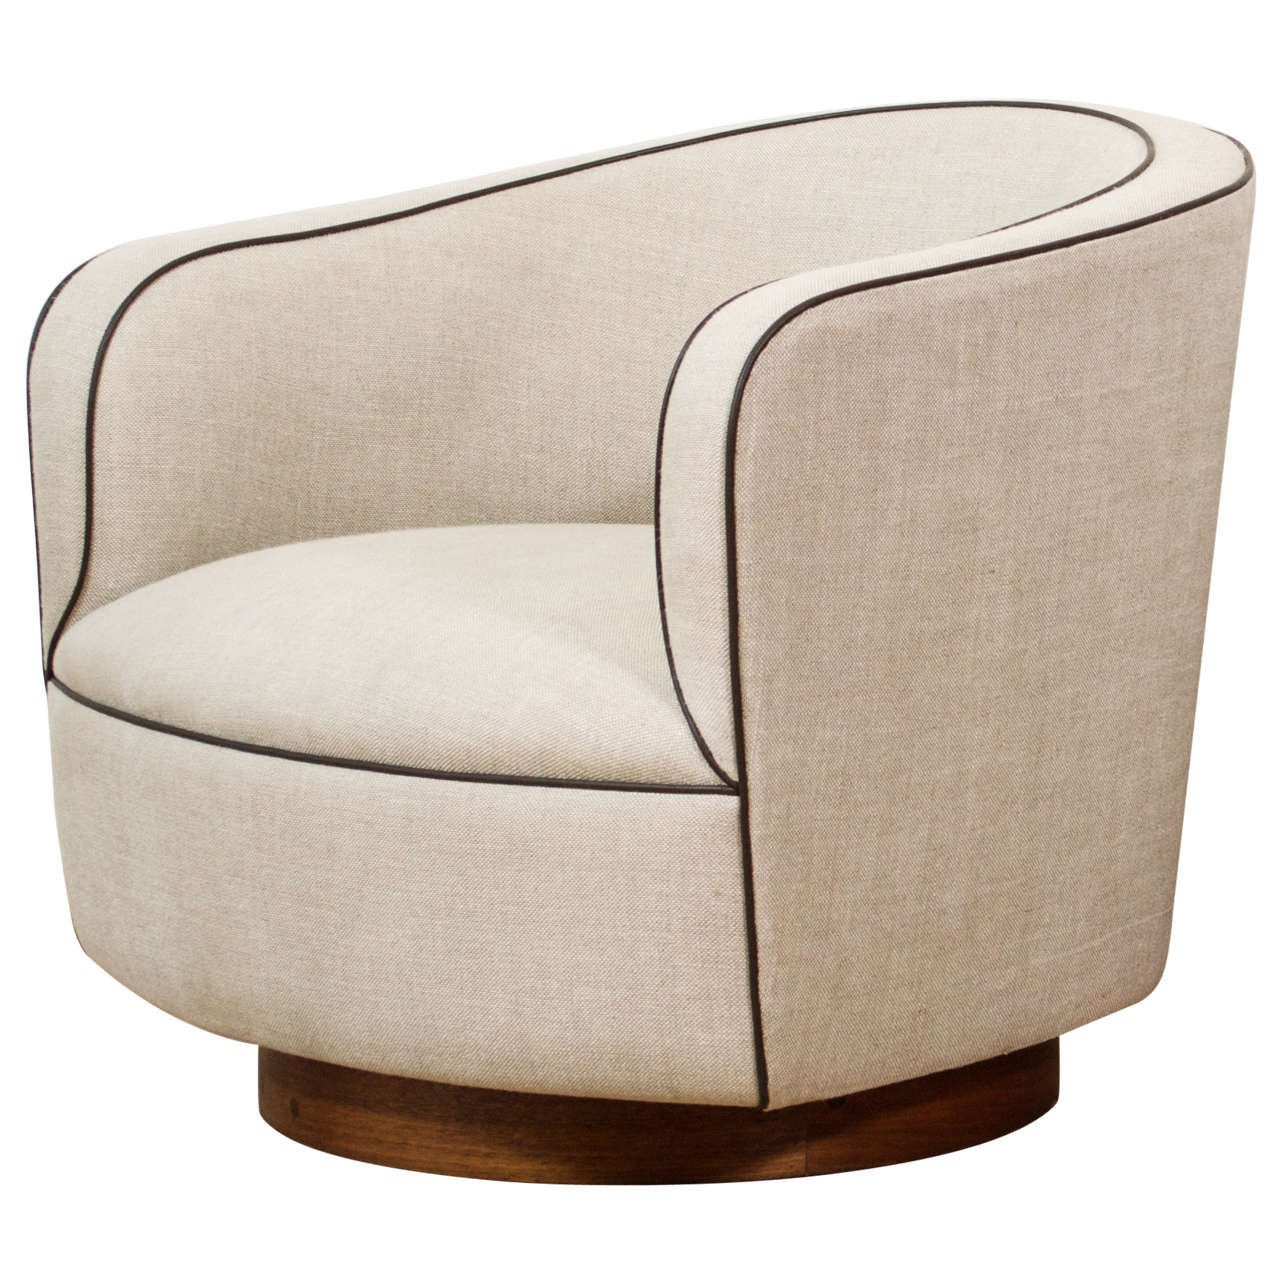 Barrel Chairs Milo Baughman Low Barrel Chair At 1stdibs